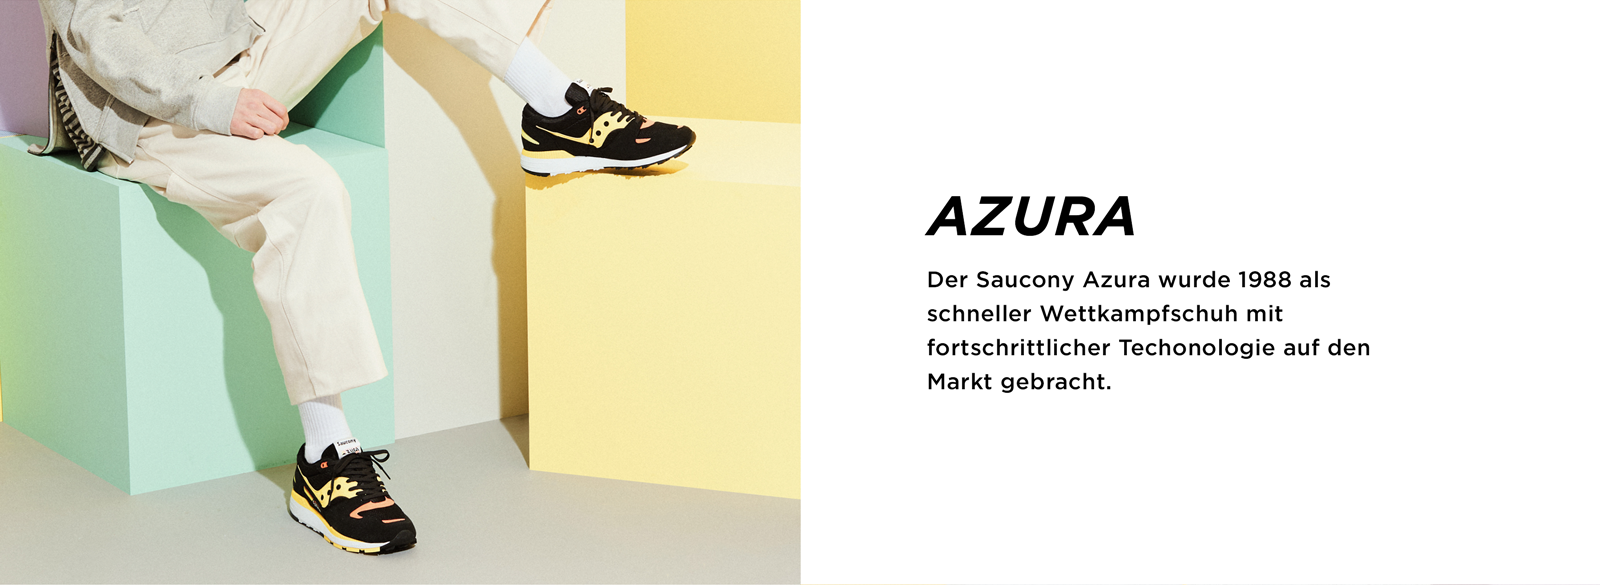 Saucony Azura Released In 1988